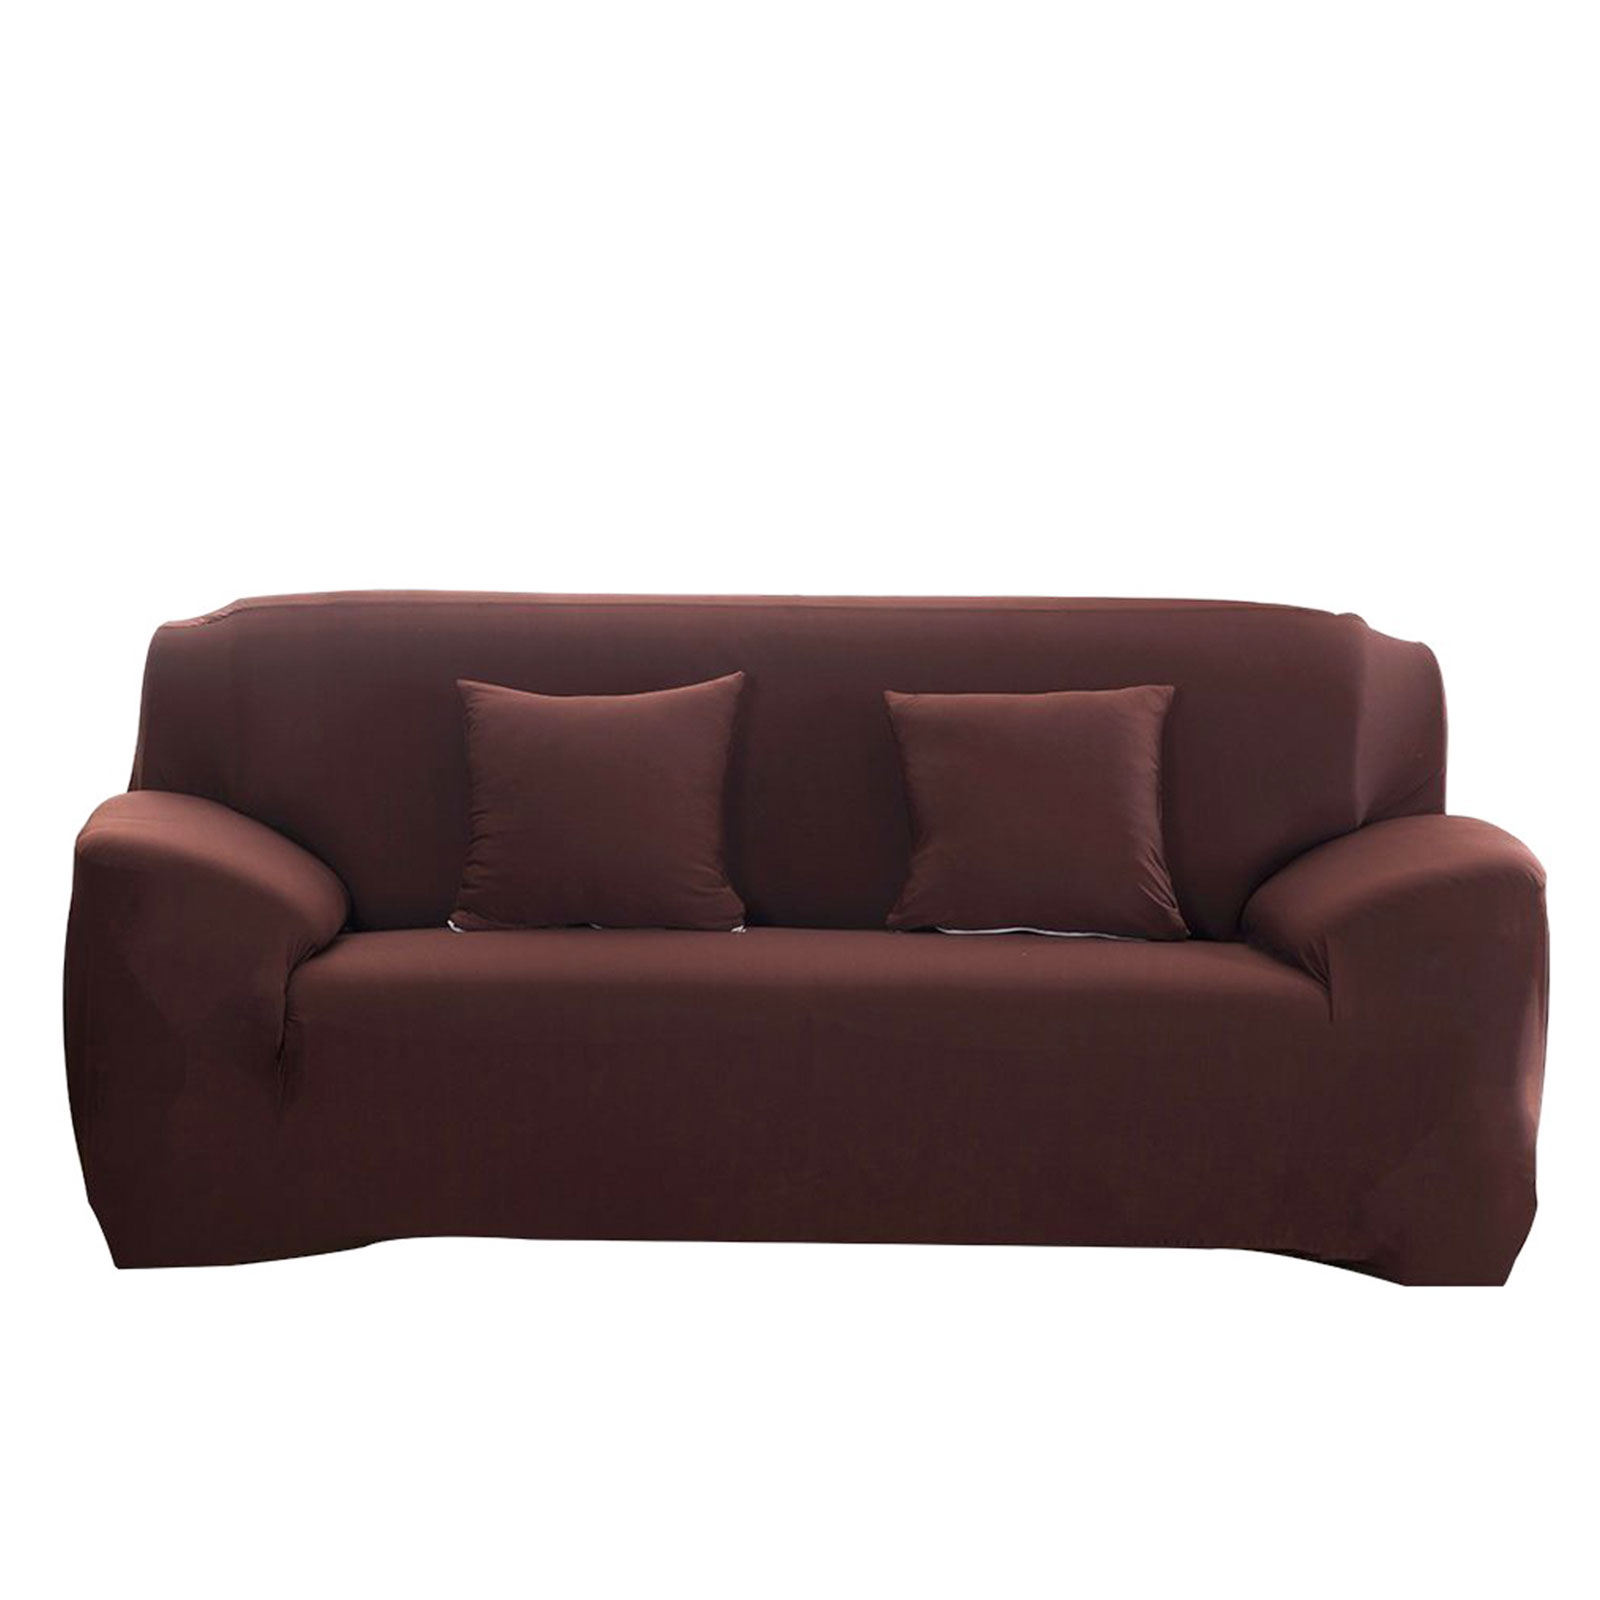 New Slipcover Stretch Sofa Cover Sofa With Loveseat Chair: Stretch Chair Sofa Covers 2 3 Seater Protector Loveseat